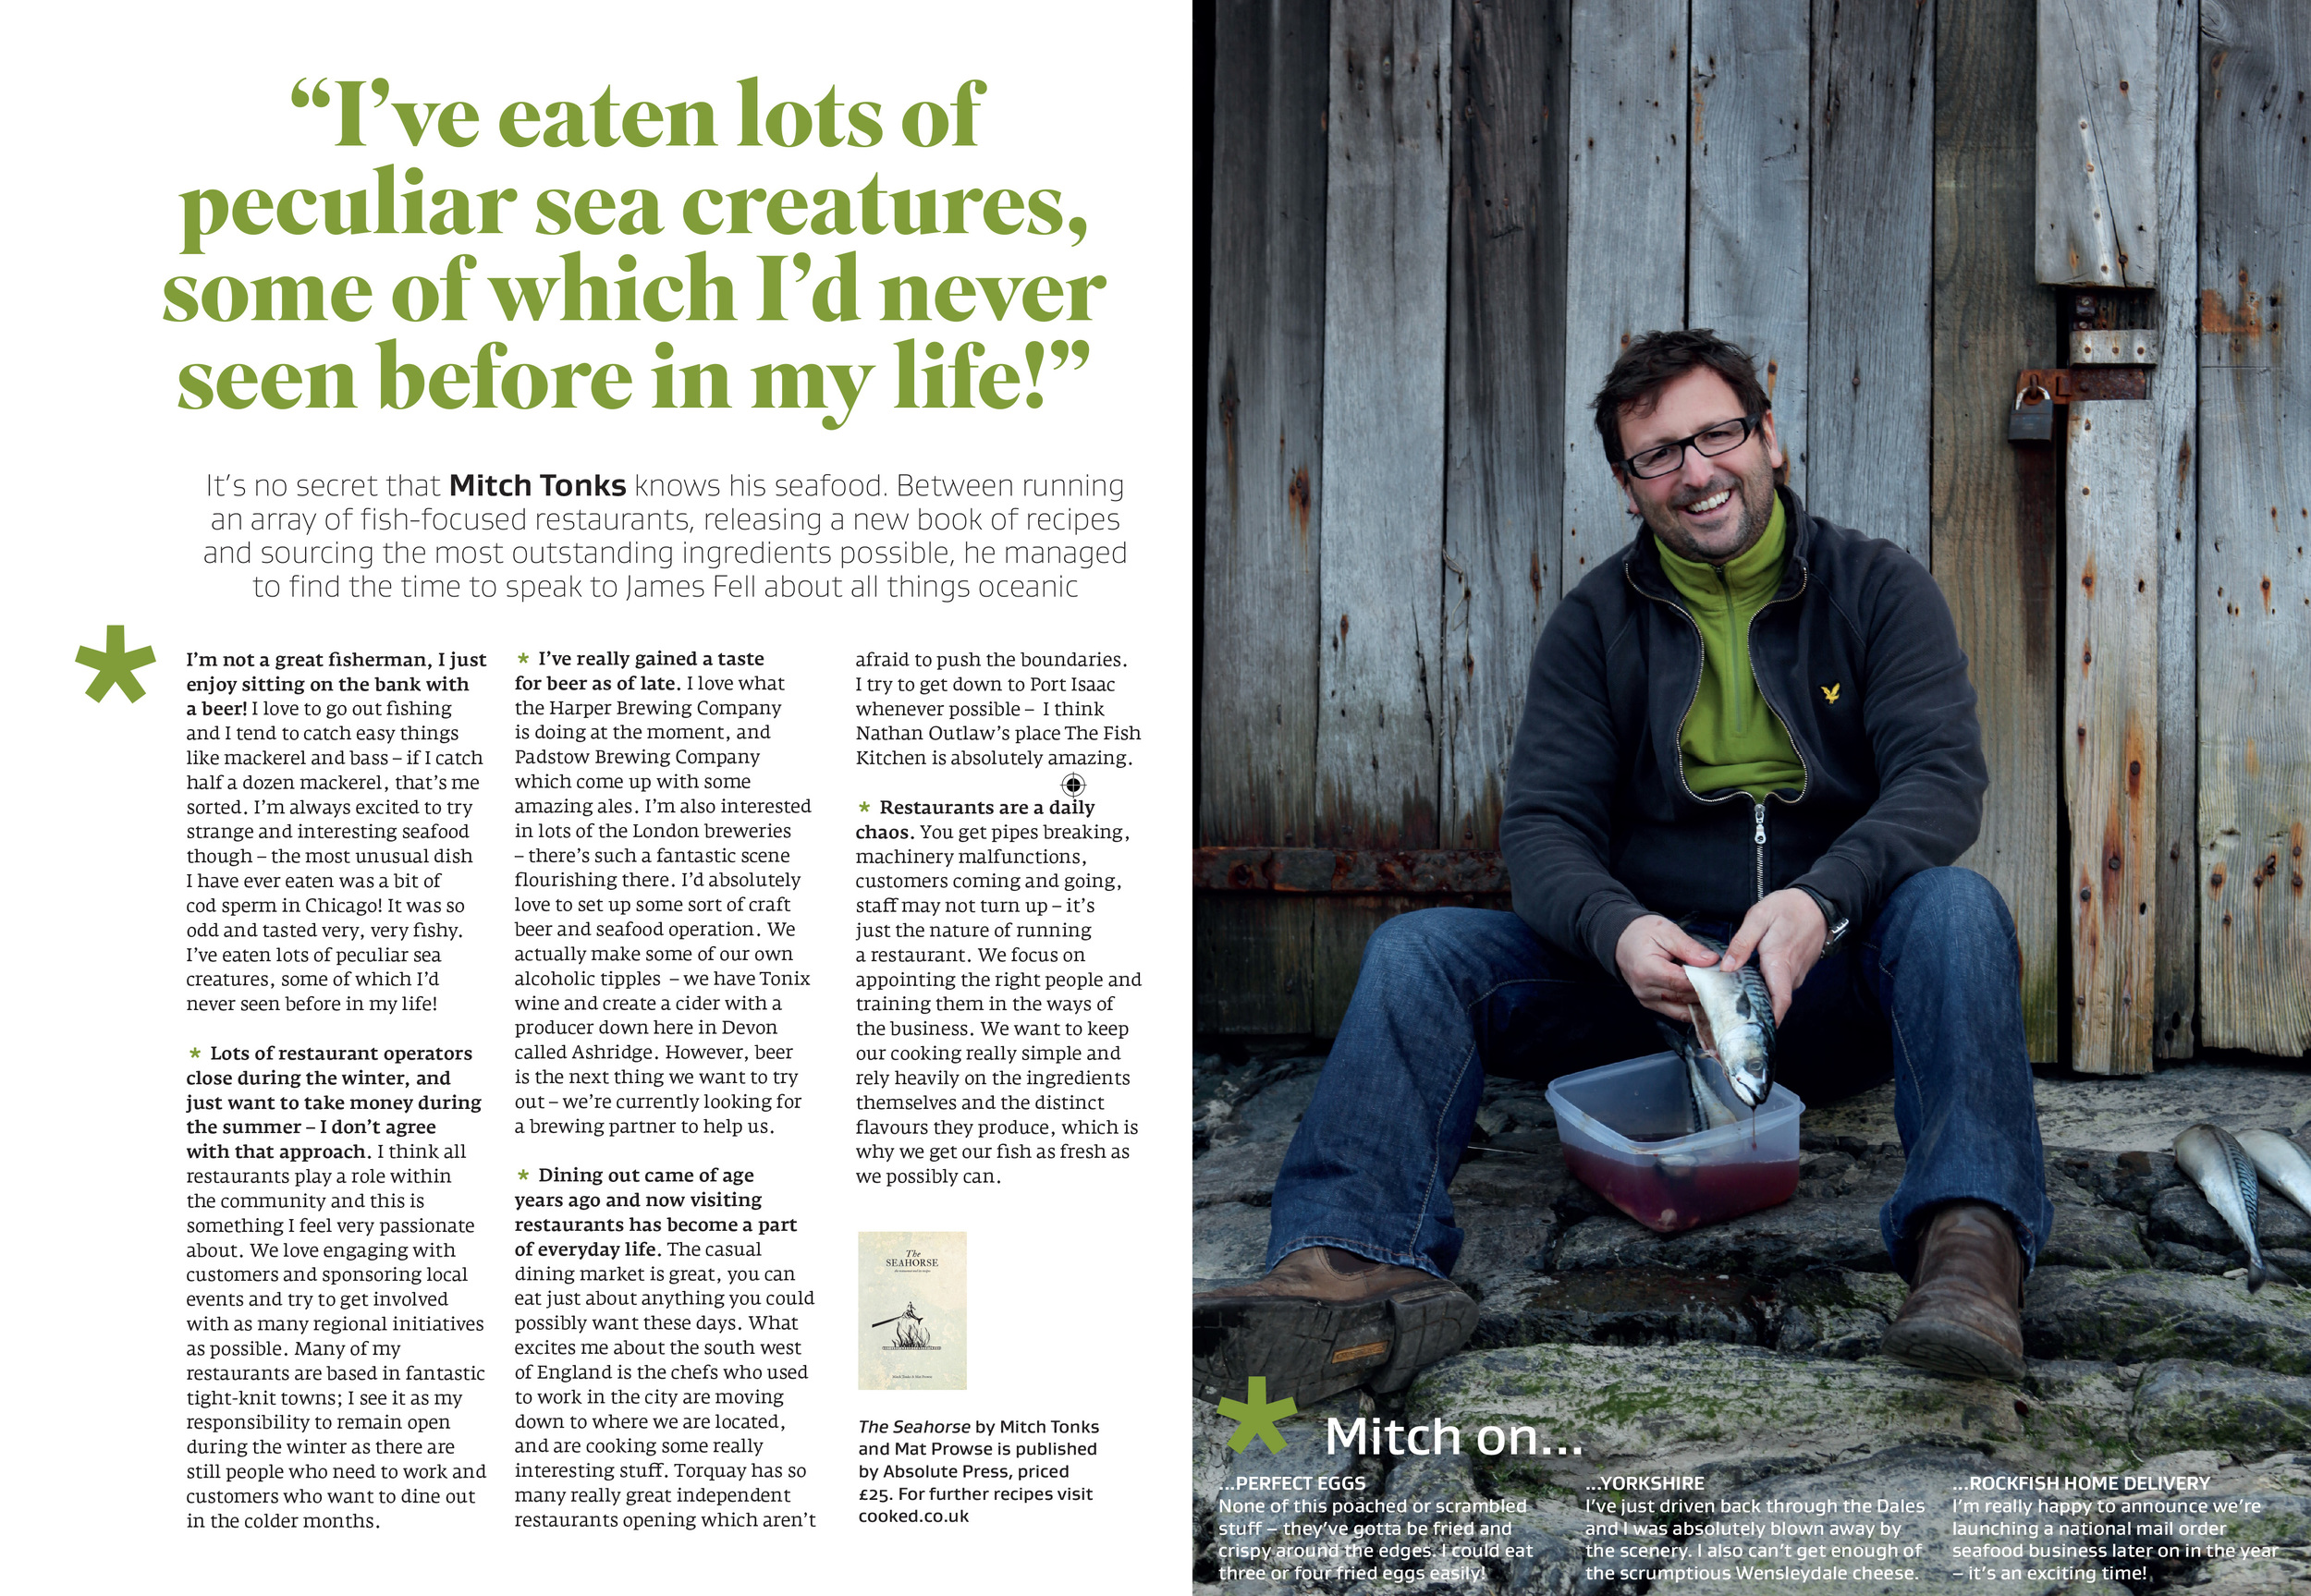 Interview with Mitch Tonks in Great British Food